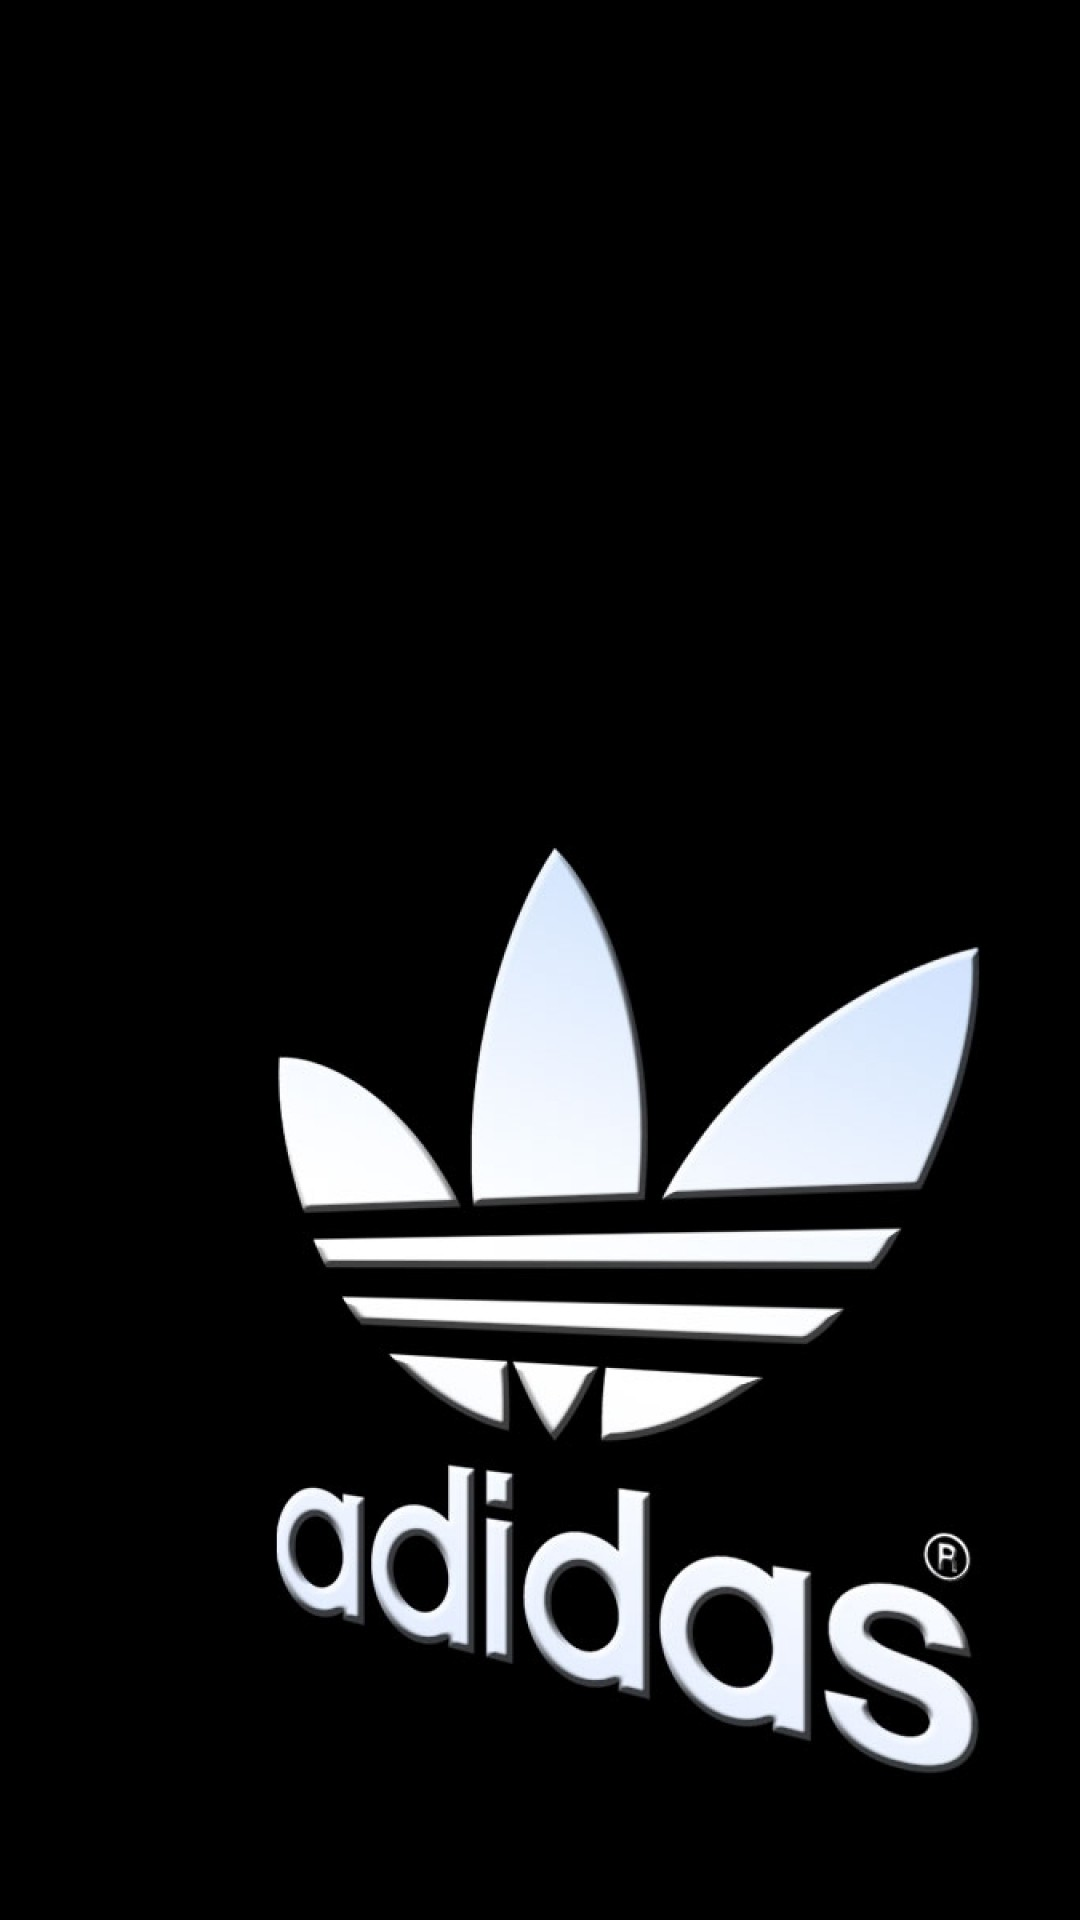 1080x1920 adidas wallpapers for iphone 5